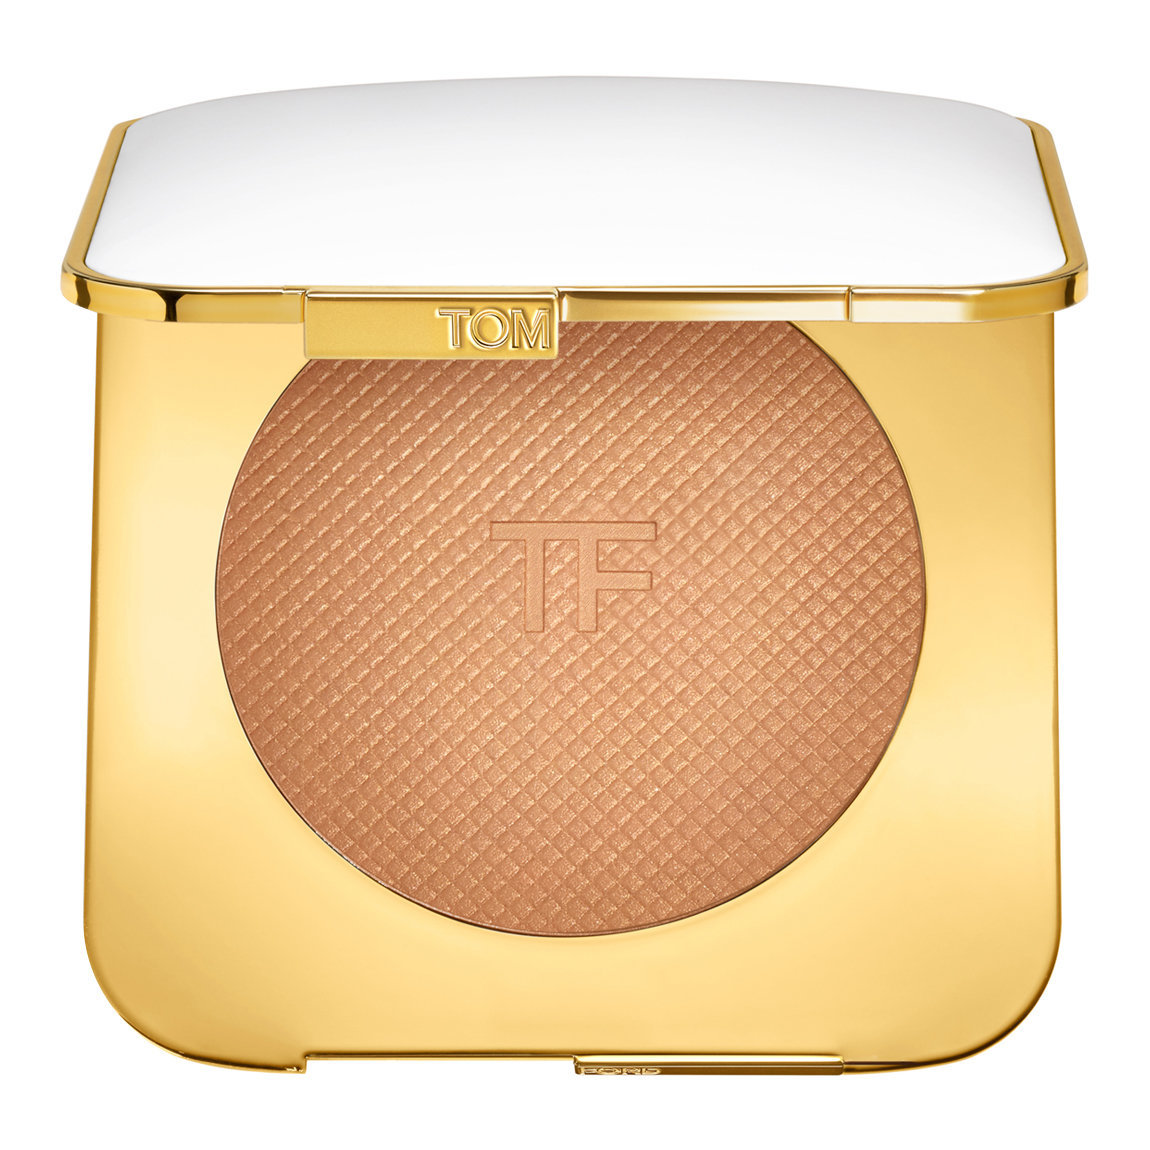 TOM FORD Soleil Glow Bronzer 01 Gold Dust (Small) alternative view 1 - product swatch.